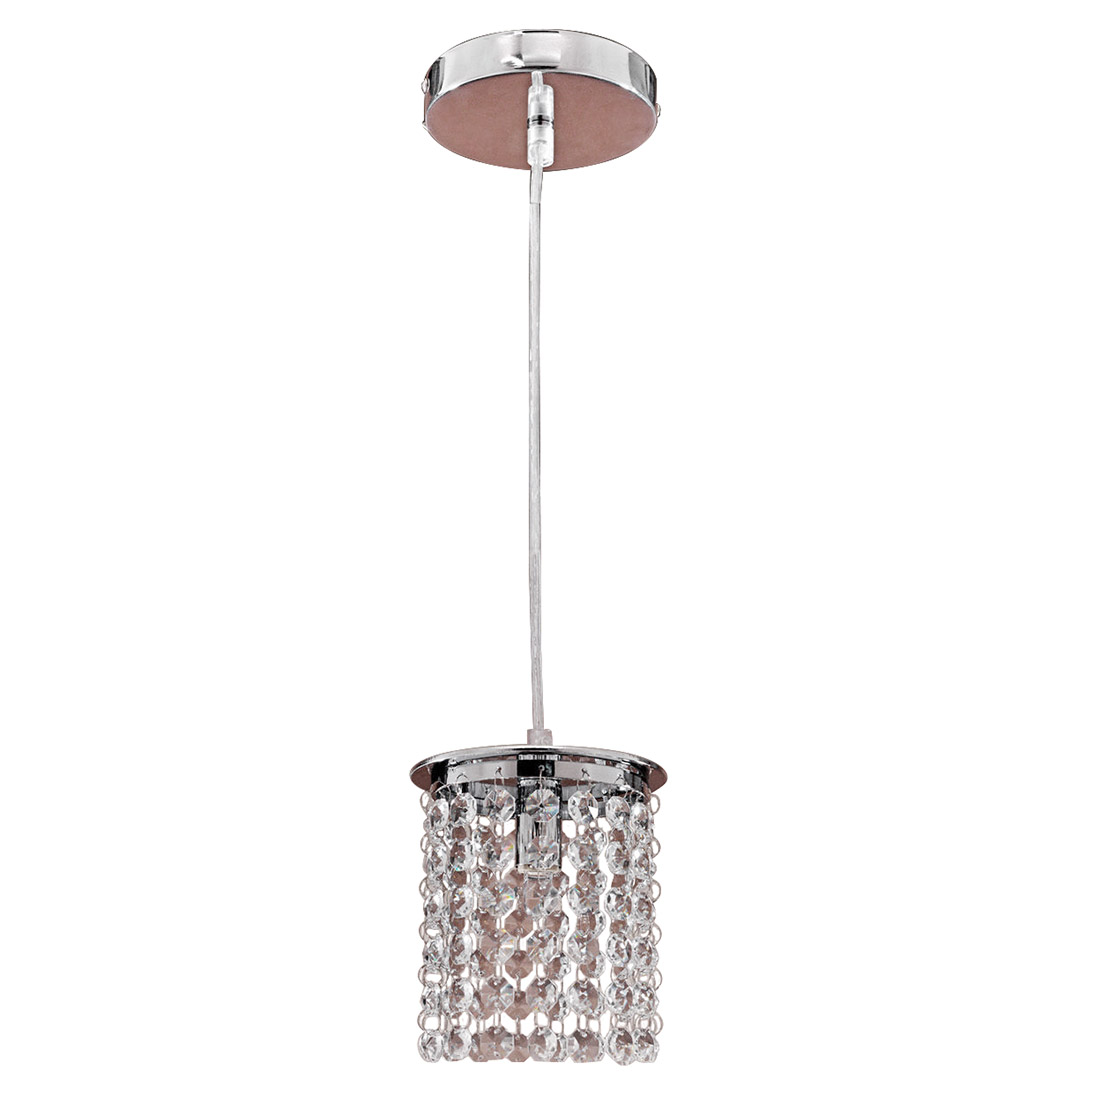 Modern Ceiling Light Dinner Room Pendant Lamp Kitchen: Crystal Ceiling Light Modern Chandelier Pendant Kitchen